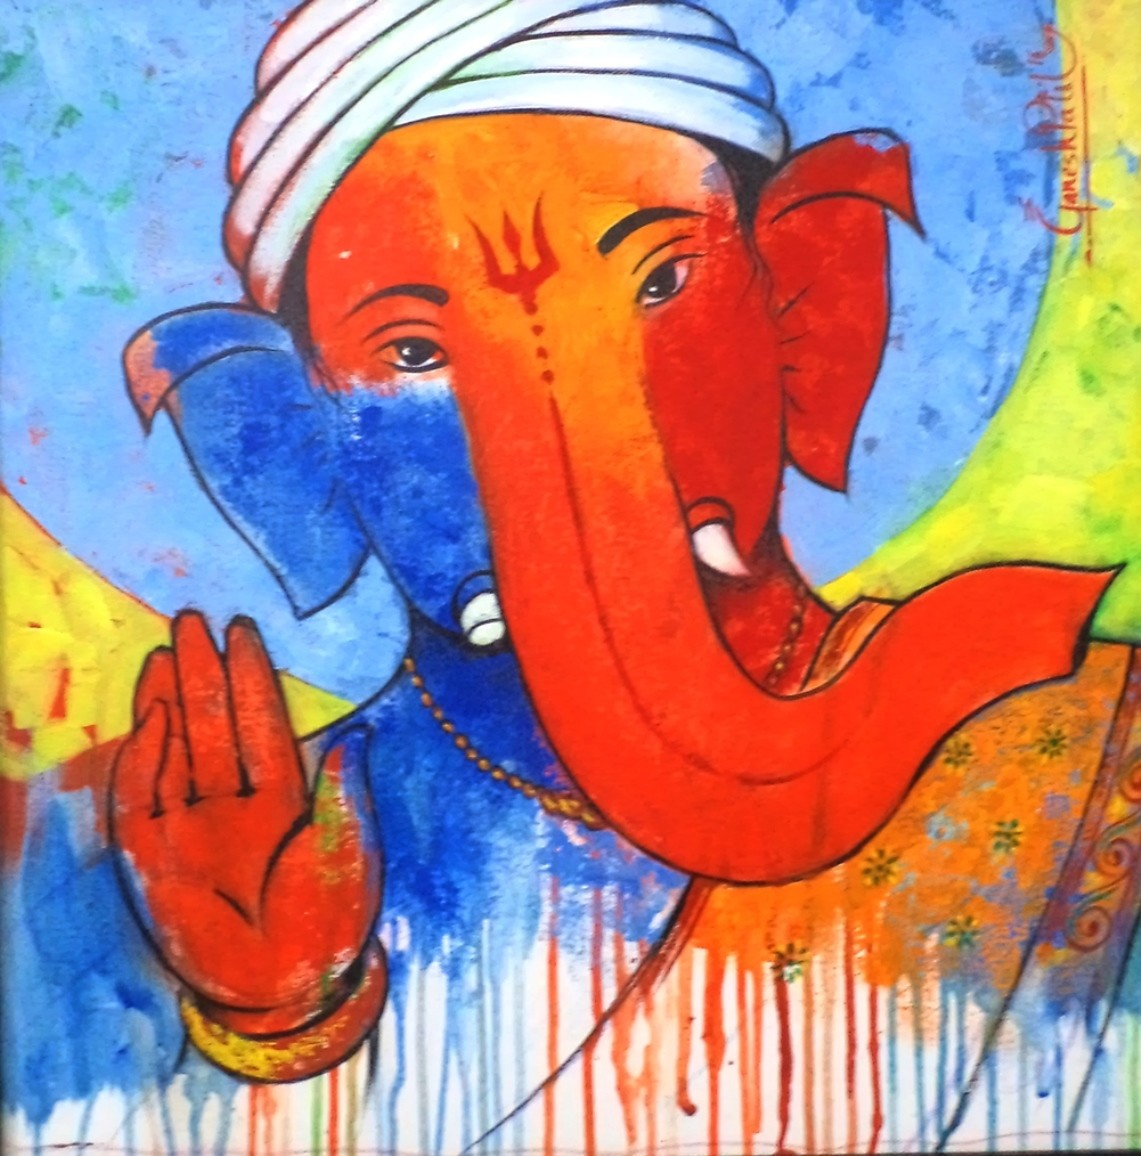 Ganesha 010 by Ganesh Patil, Expressionism Painting, Acrylic on Canvas, Azure color